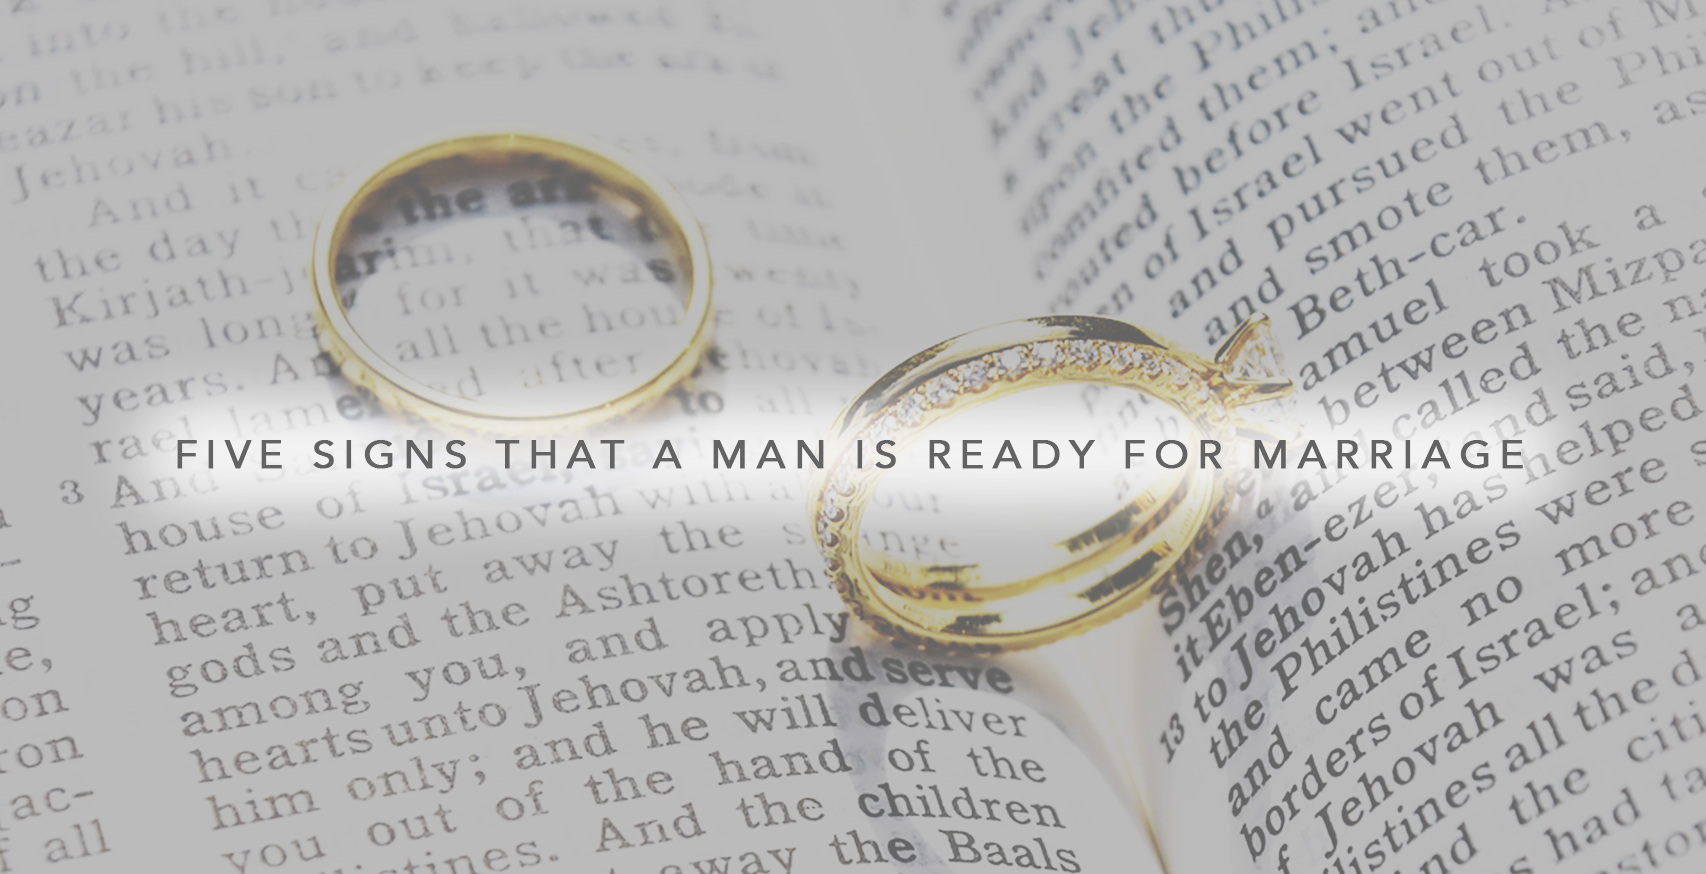 5 Signs That a Man is Ready for Marriage - The Art of Living